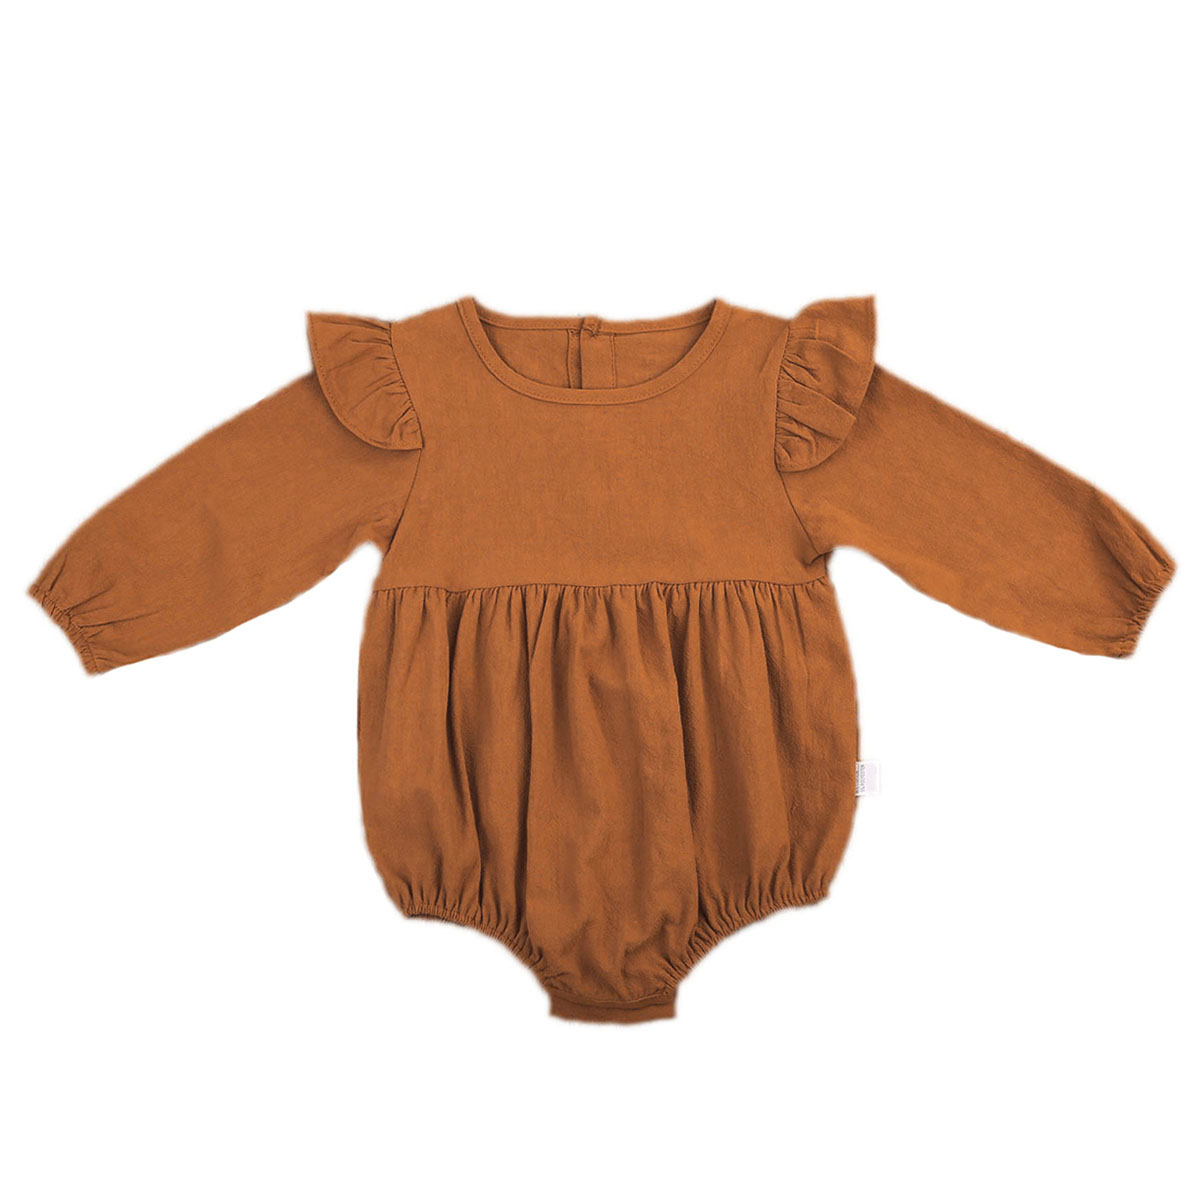 H3f42147e423e49deb5626763d7aef73an Pudcoco Solid Cotton Baby Autumn Rompers Vintage Baby Girl Romper Long Sleeve Baby Clothes 3m - 3Years